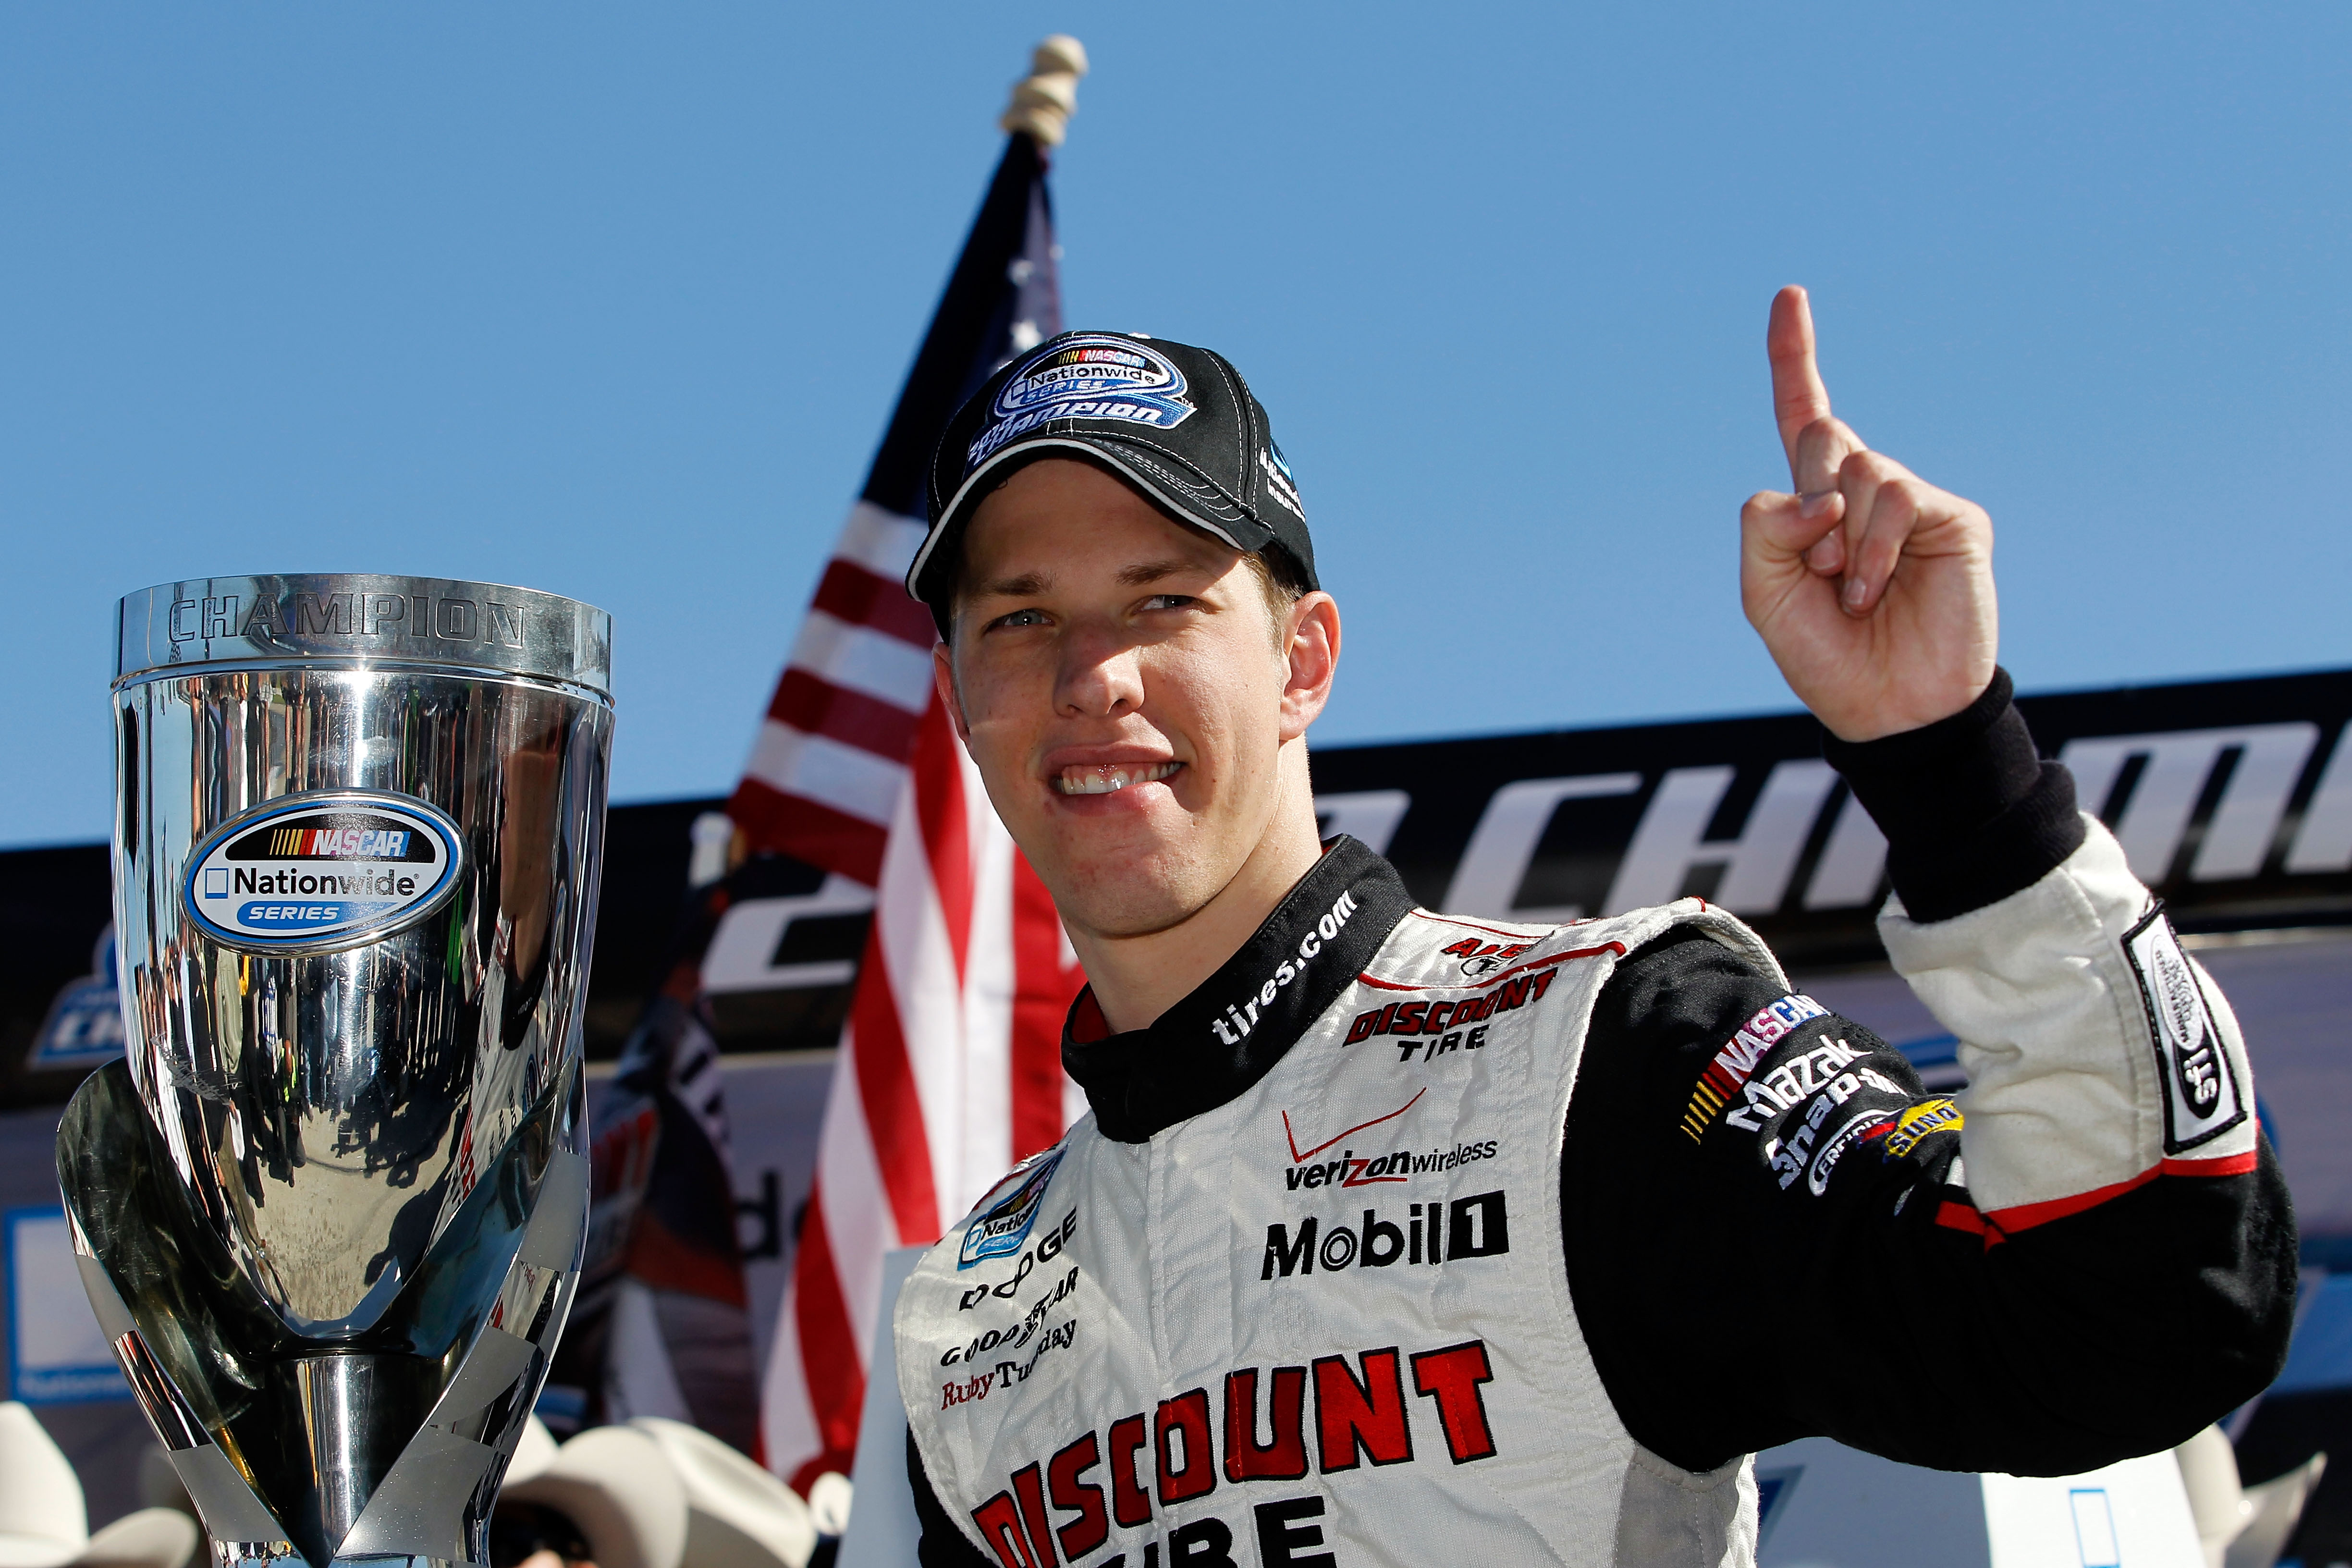 FORT WORTH, TX - NOVEMBER 06:  Brad Keselowski, driver of the #22 Discount Tire Dodge, celebrates after winning the Nationwide Championship with a third-place finish in the NASCAR Nationwide Series O'Reilly Auto Parts Challenge at Texas Motor Speedway on